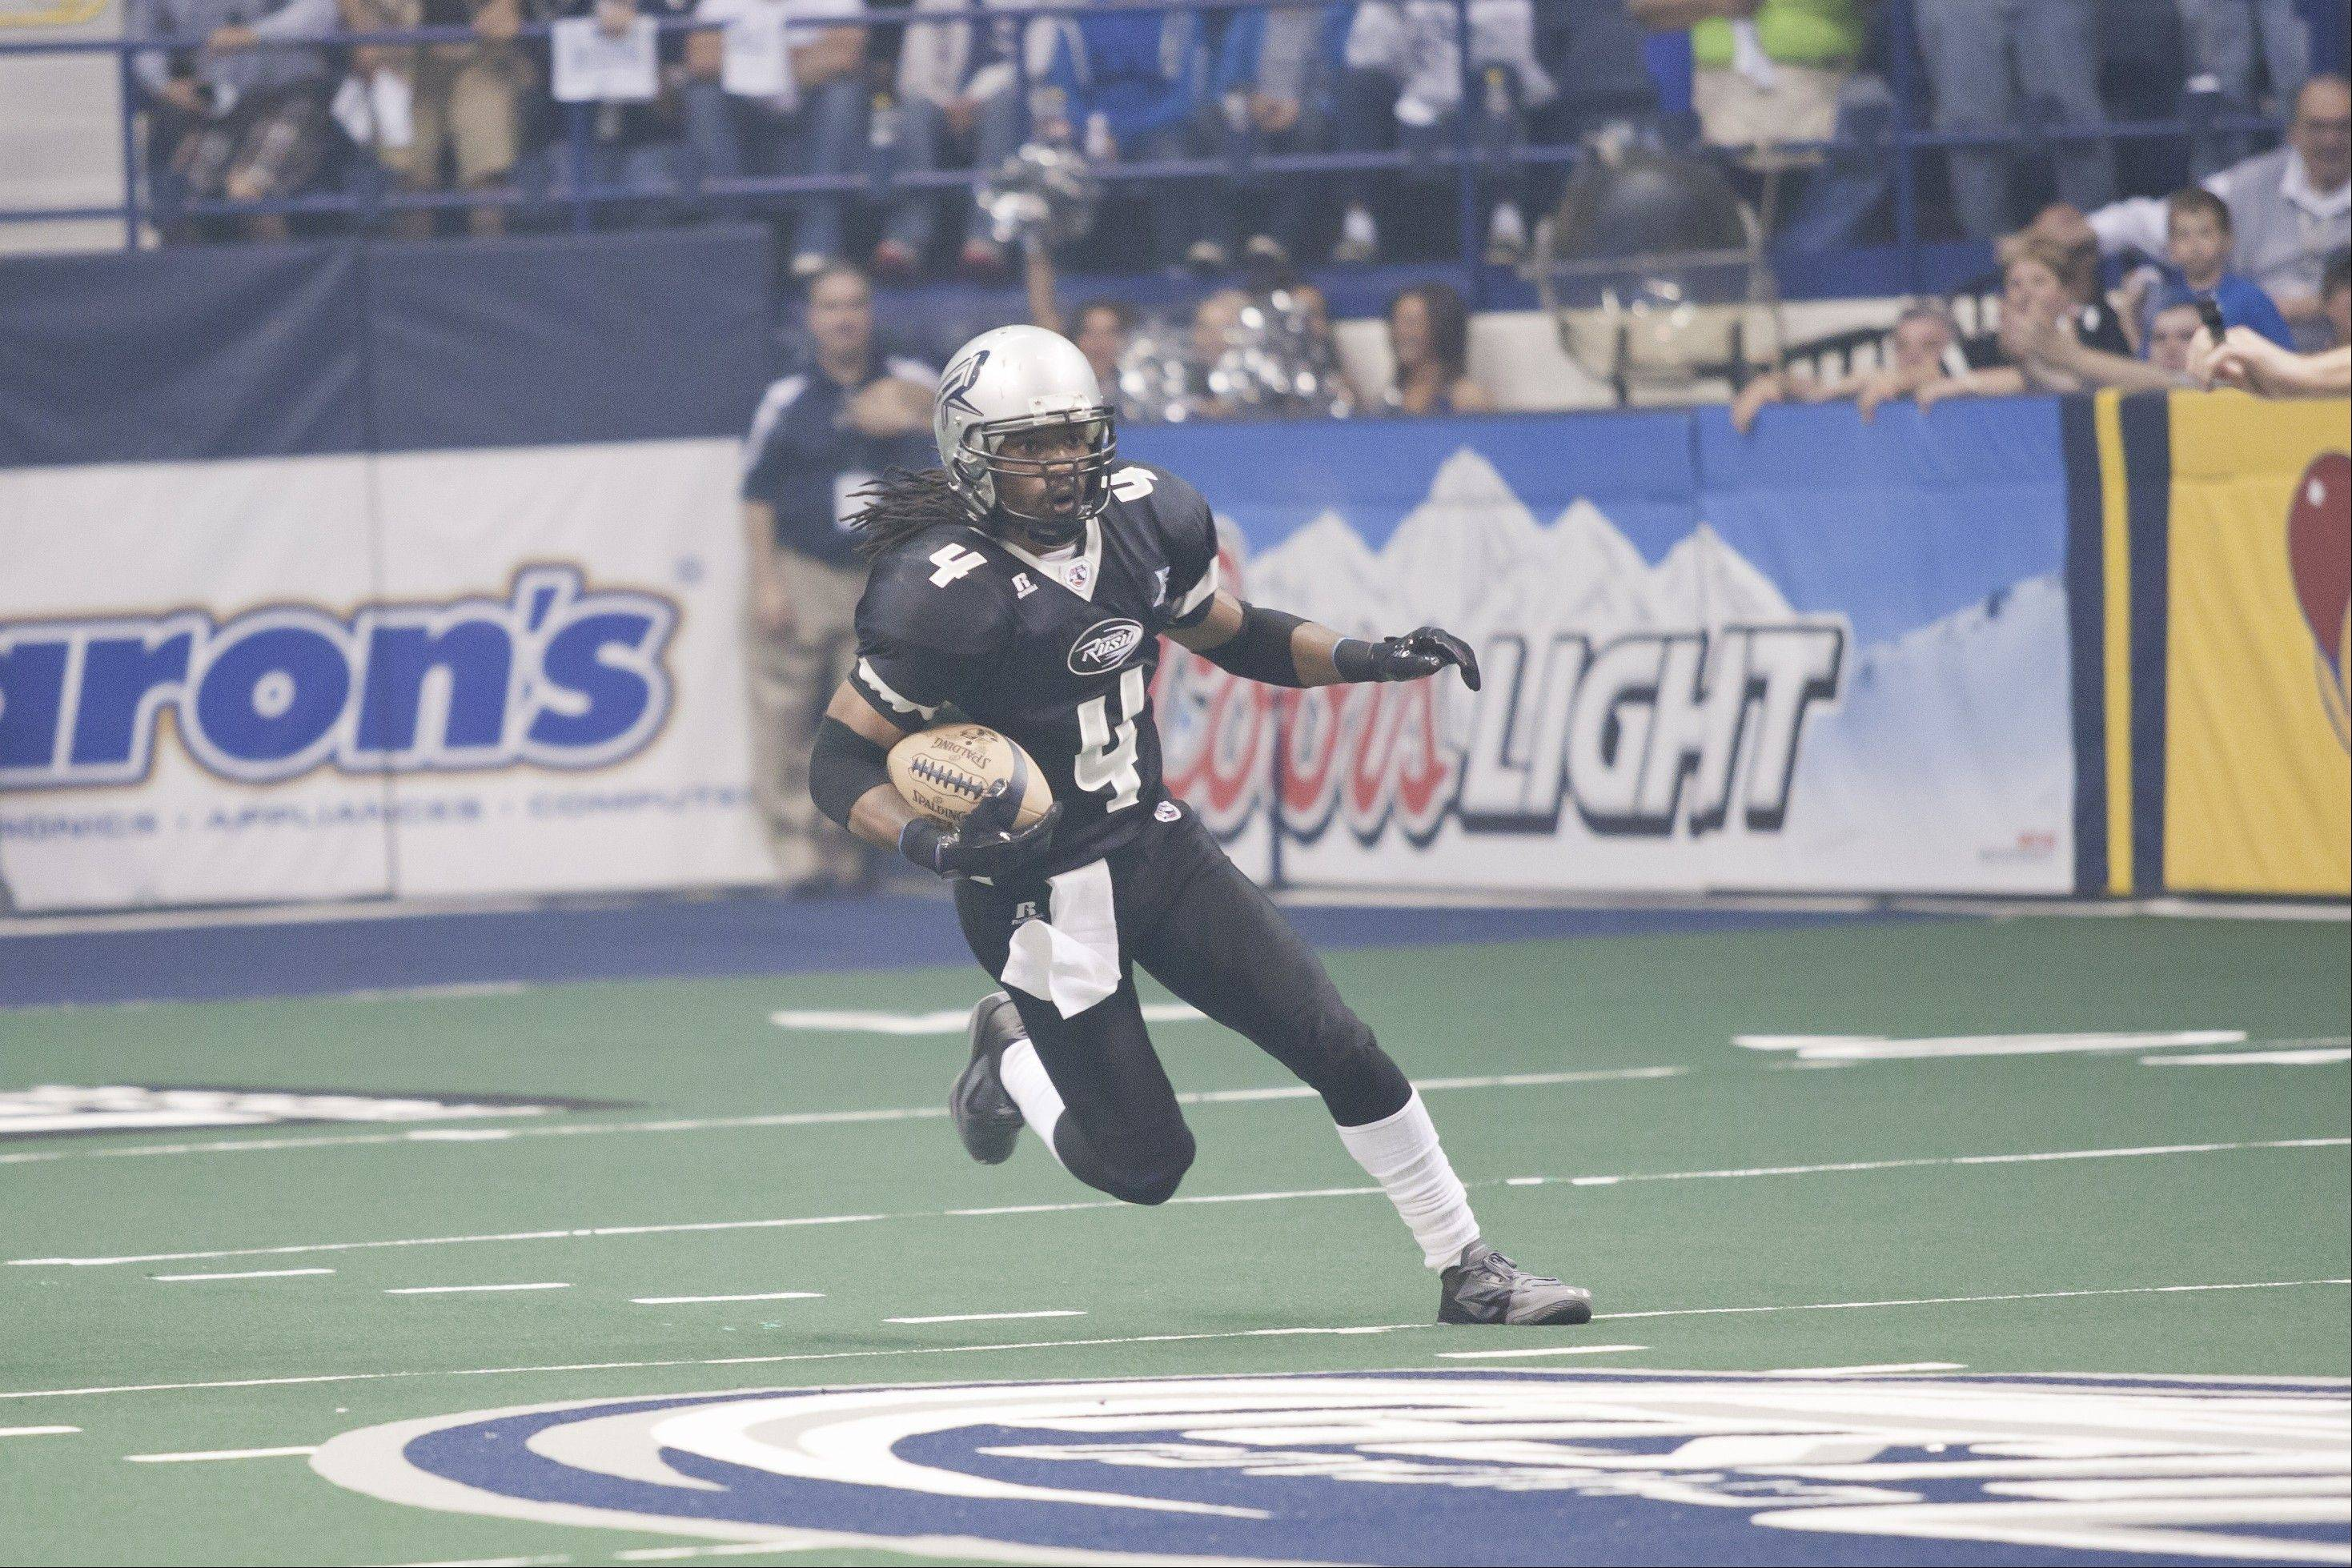 Rush defensive back Vic Hall has been a defensive stalwart this season. The Rush takes on the Iowa Barnstormers on Sunday at the Allstate Arena.